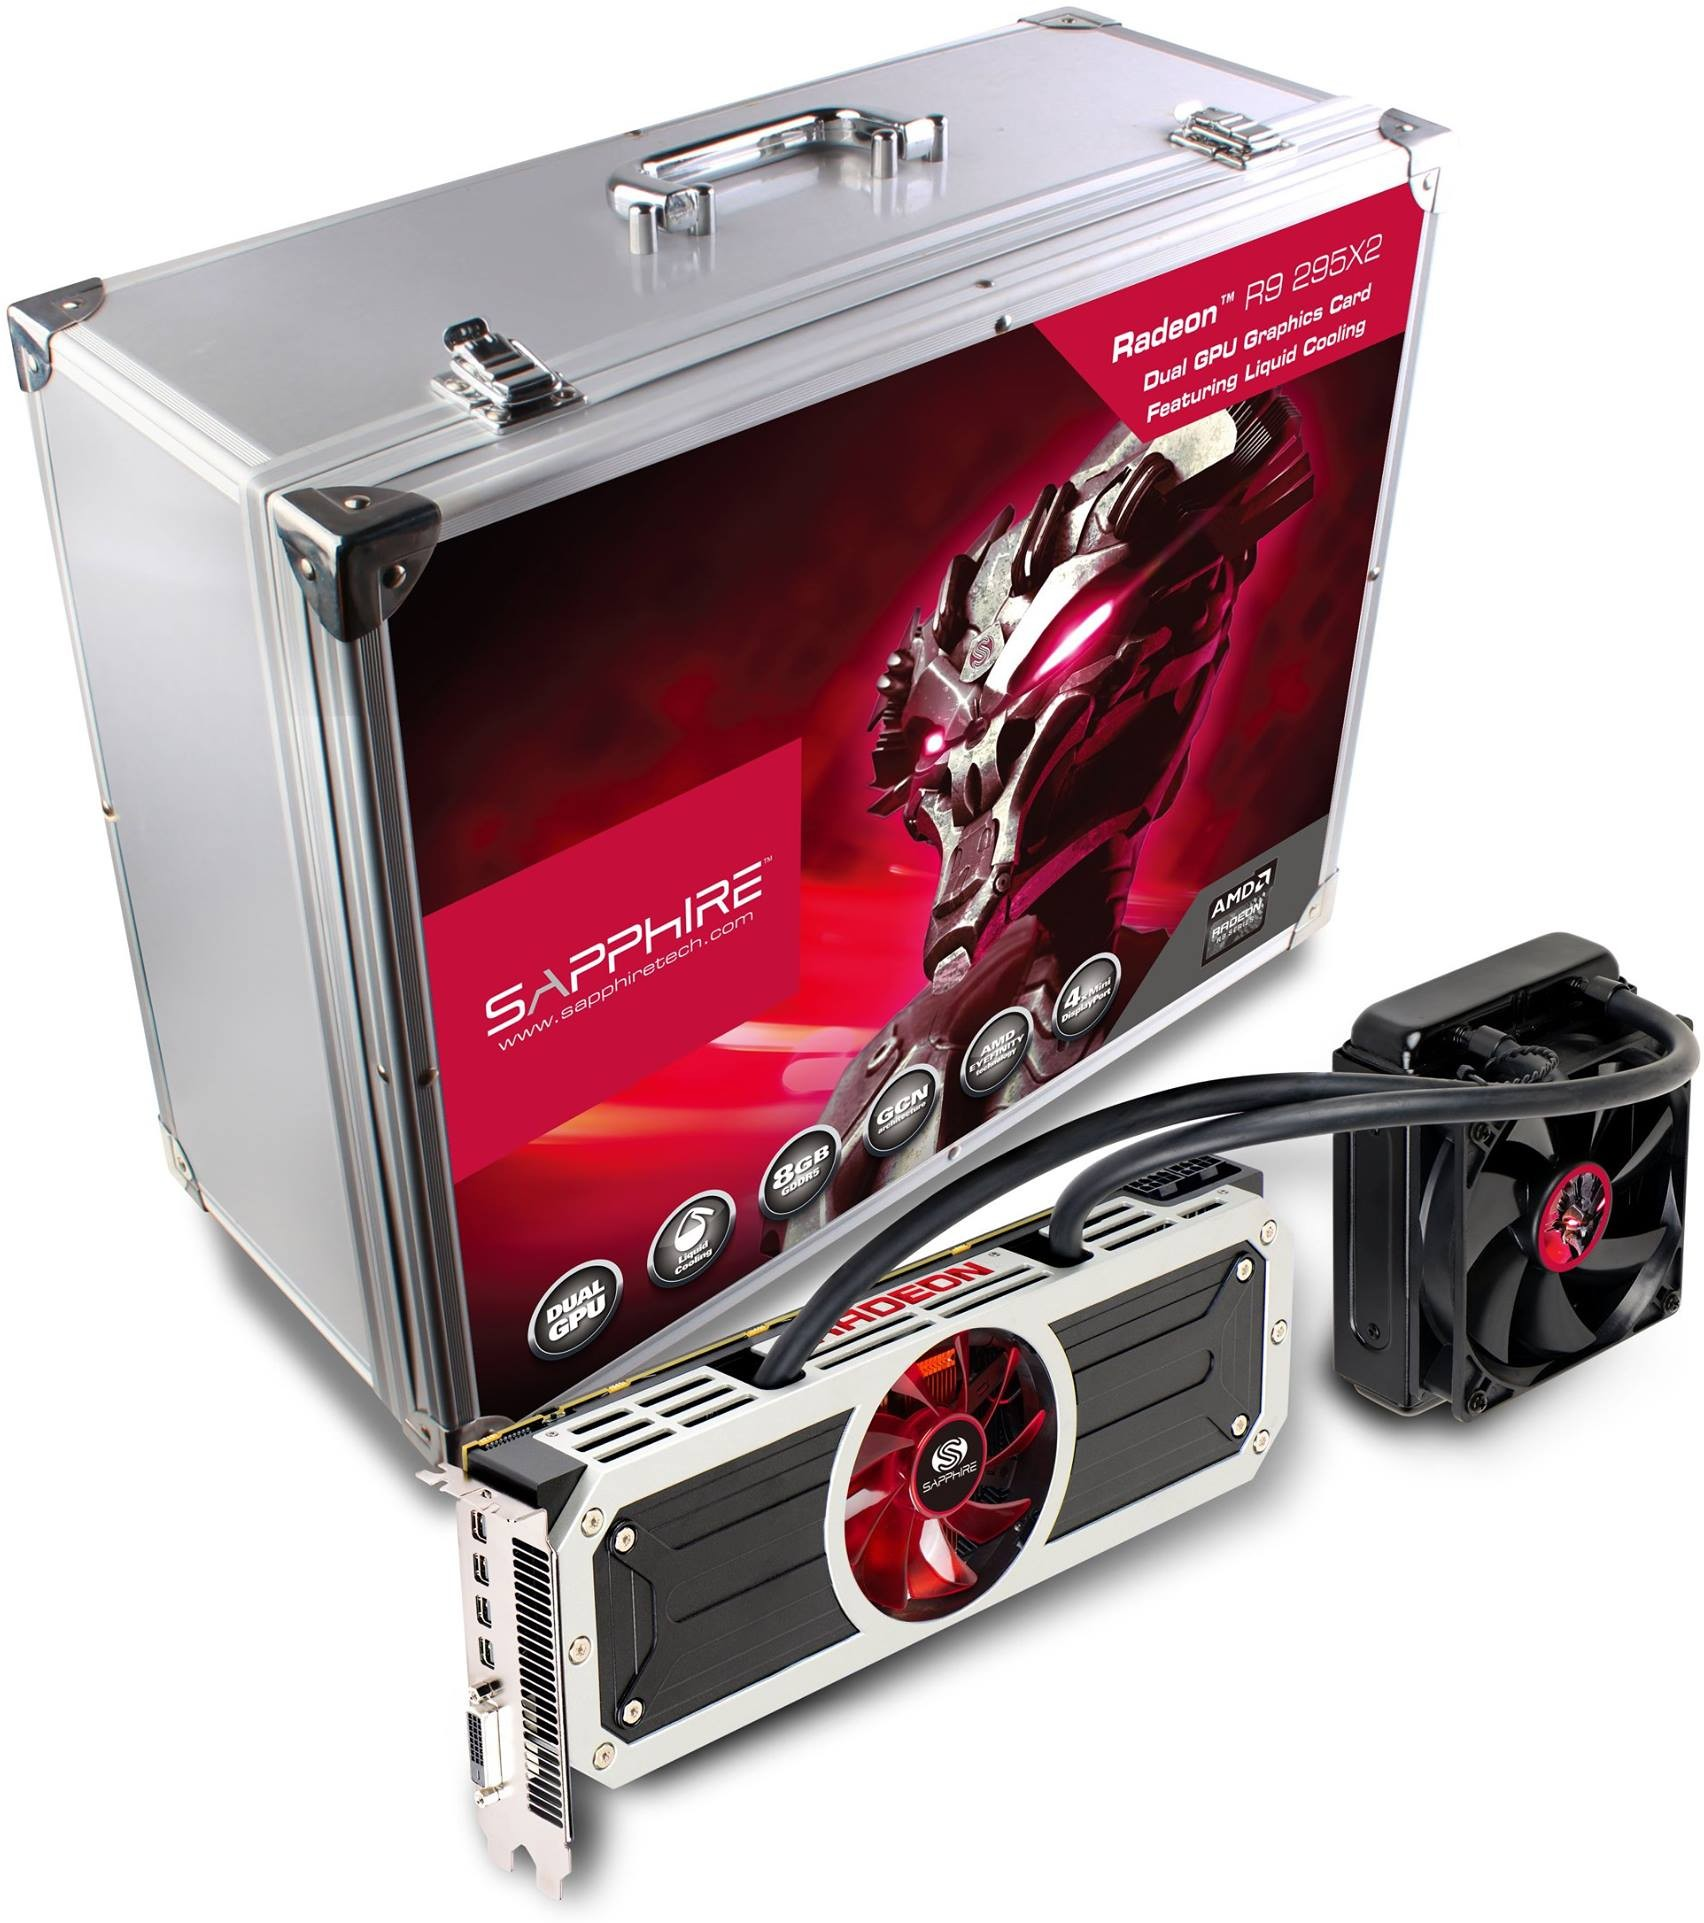 Sapphire Radeon R9 295X2 Ships in Signature Suitcase